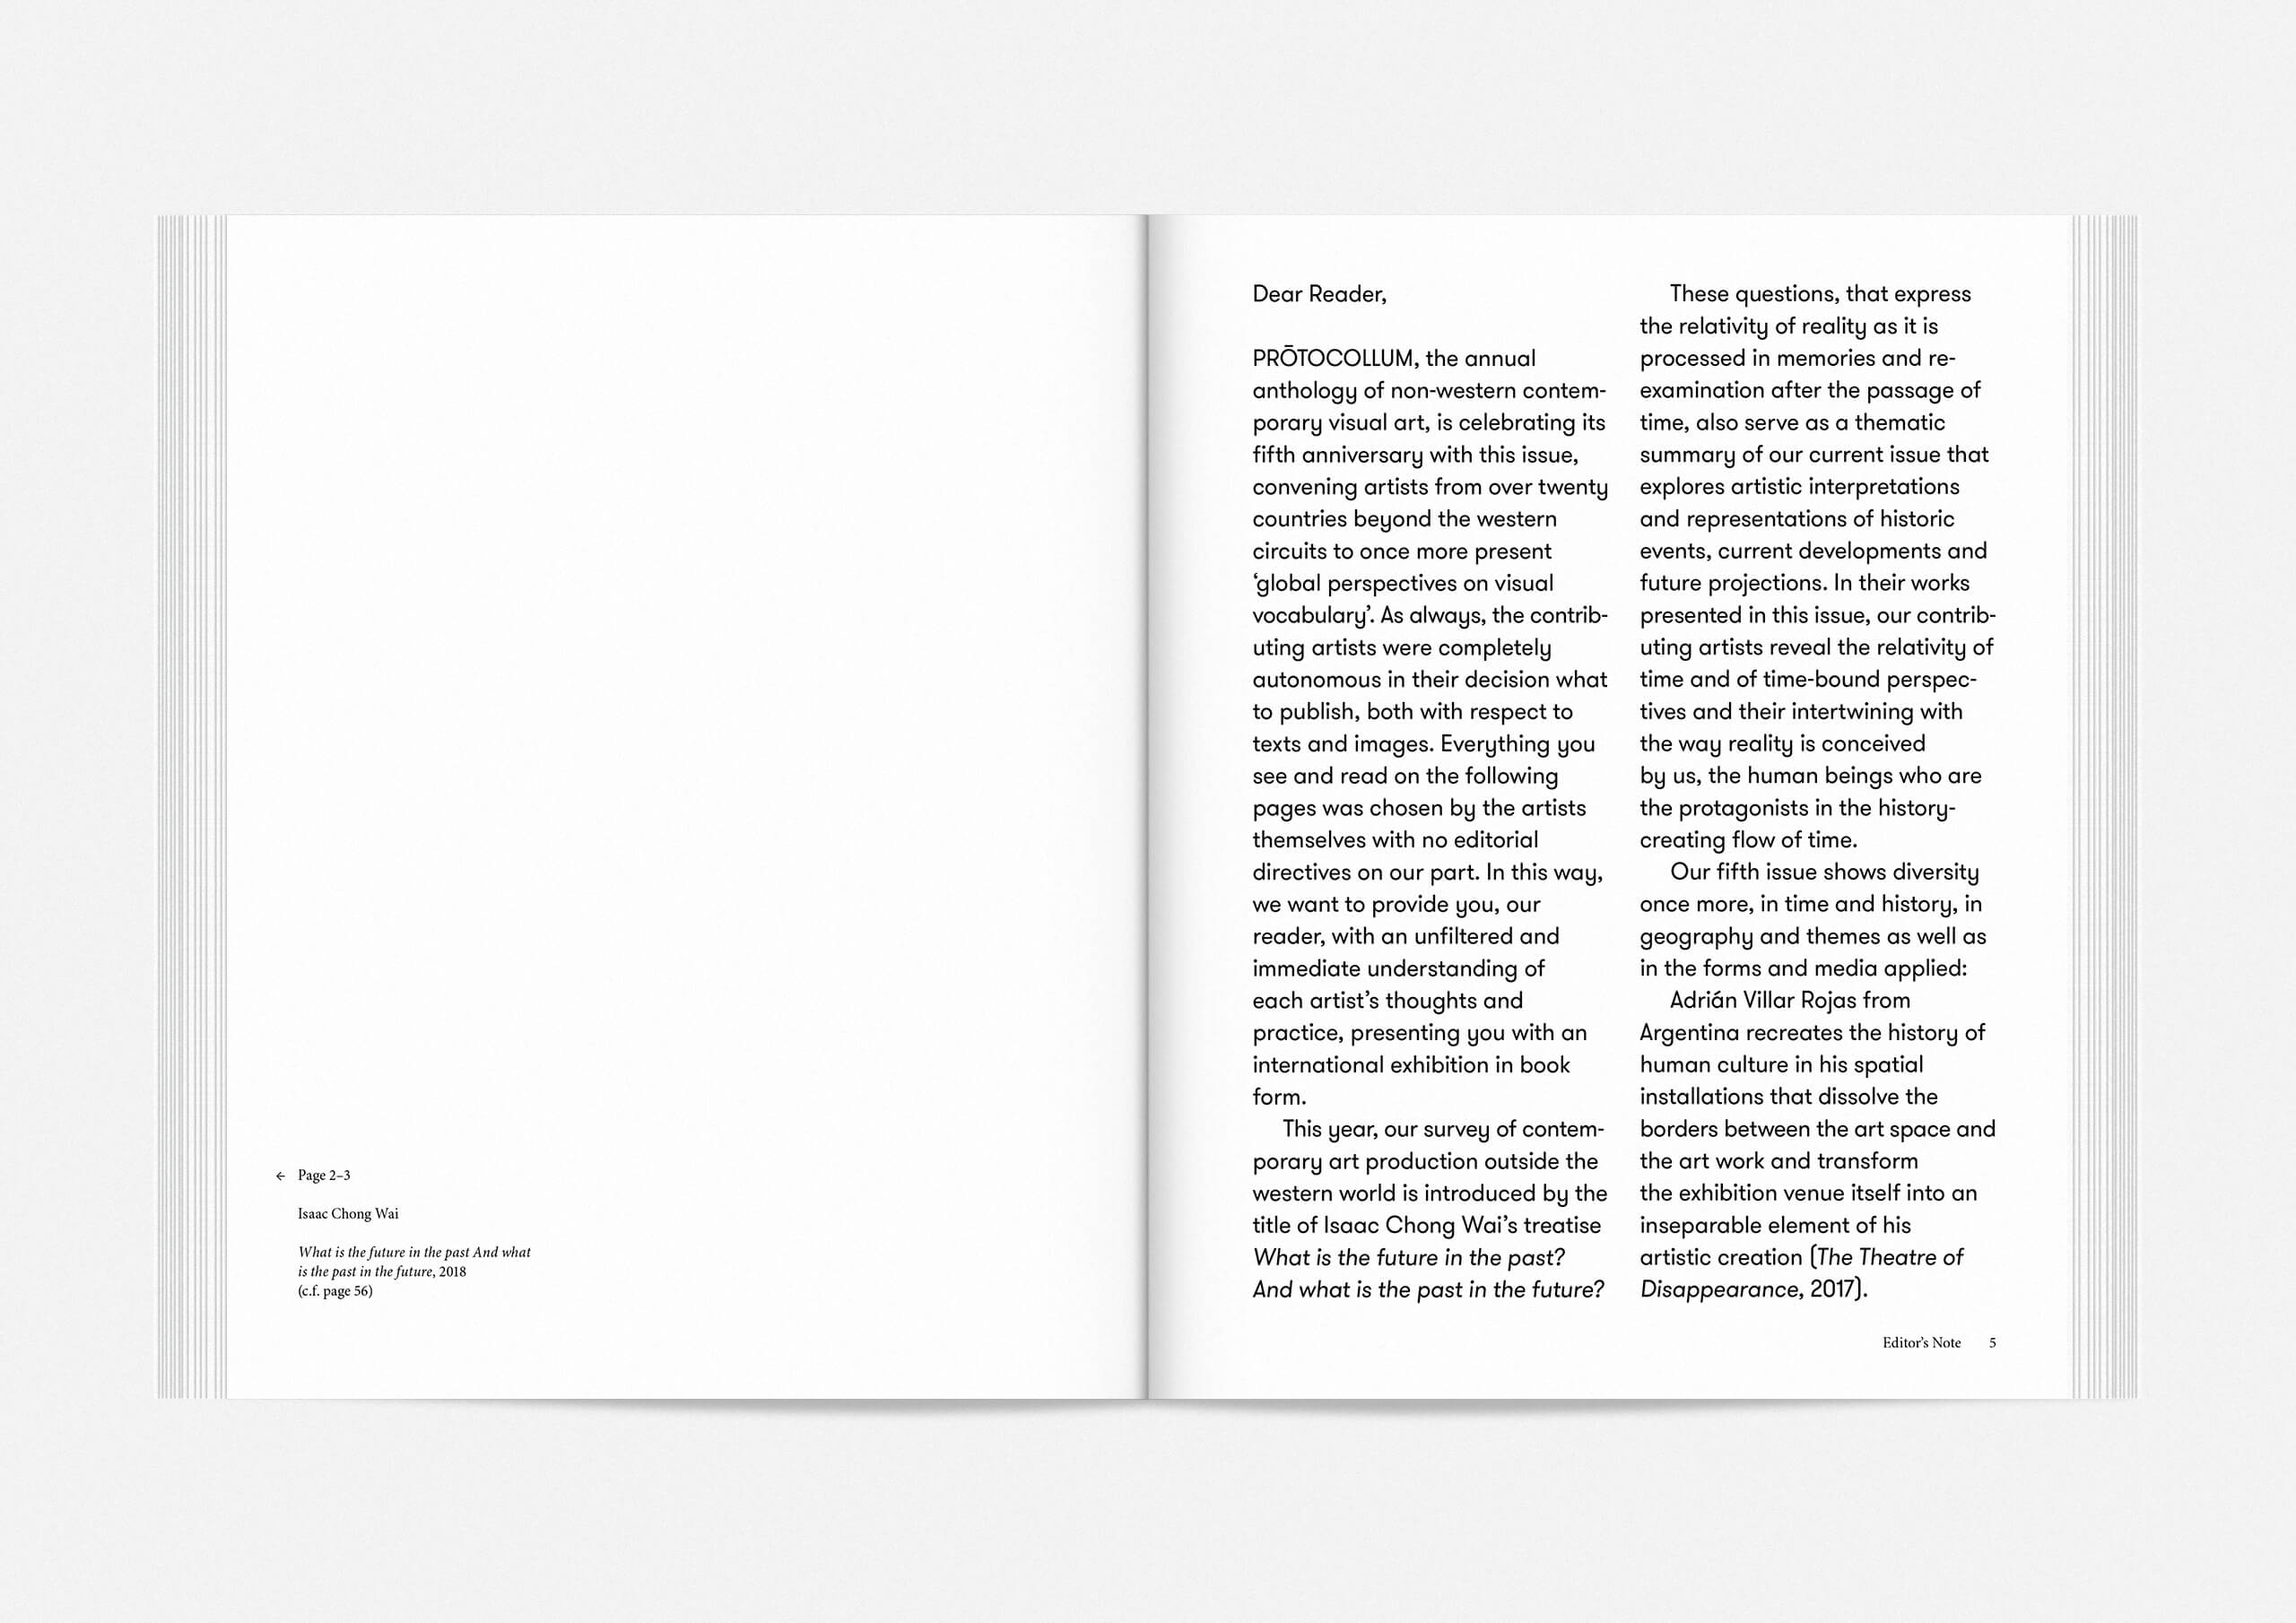 http://neuegestaltung.de/media/pages/clients/protocollum-issue-no-05/b8881a1cac-1597415145/protocollum-5-page-0405-ng.jpg